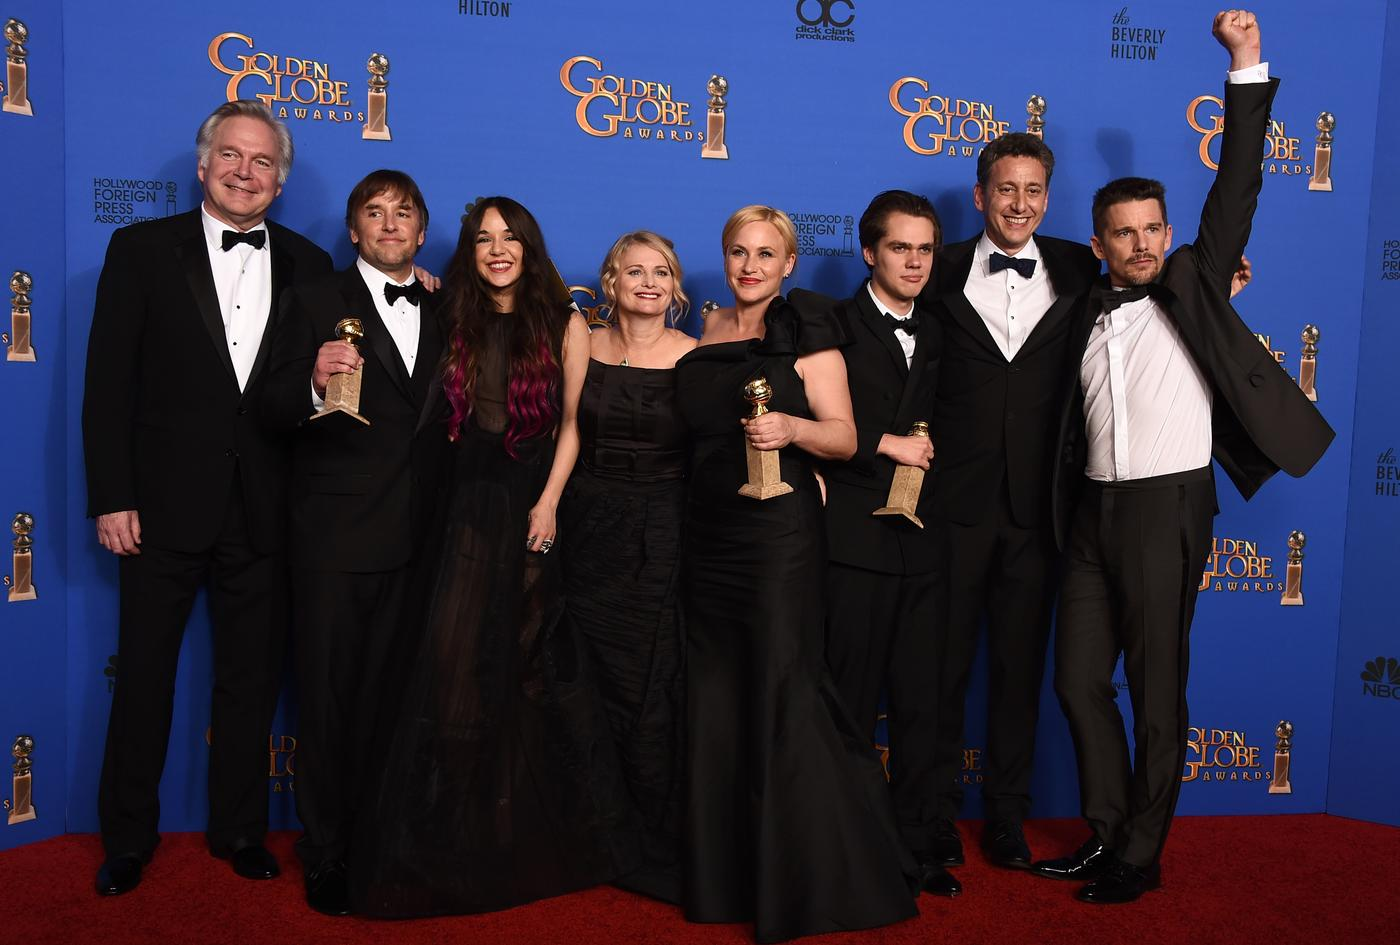 The Golden Globes 2015 winners: What does it all mean for the Oscars?